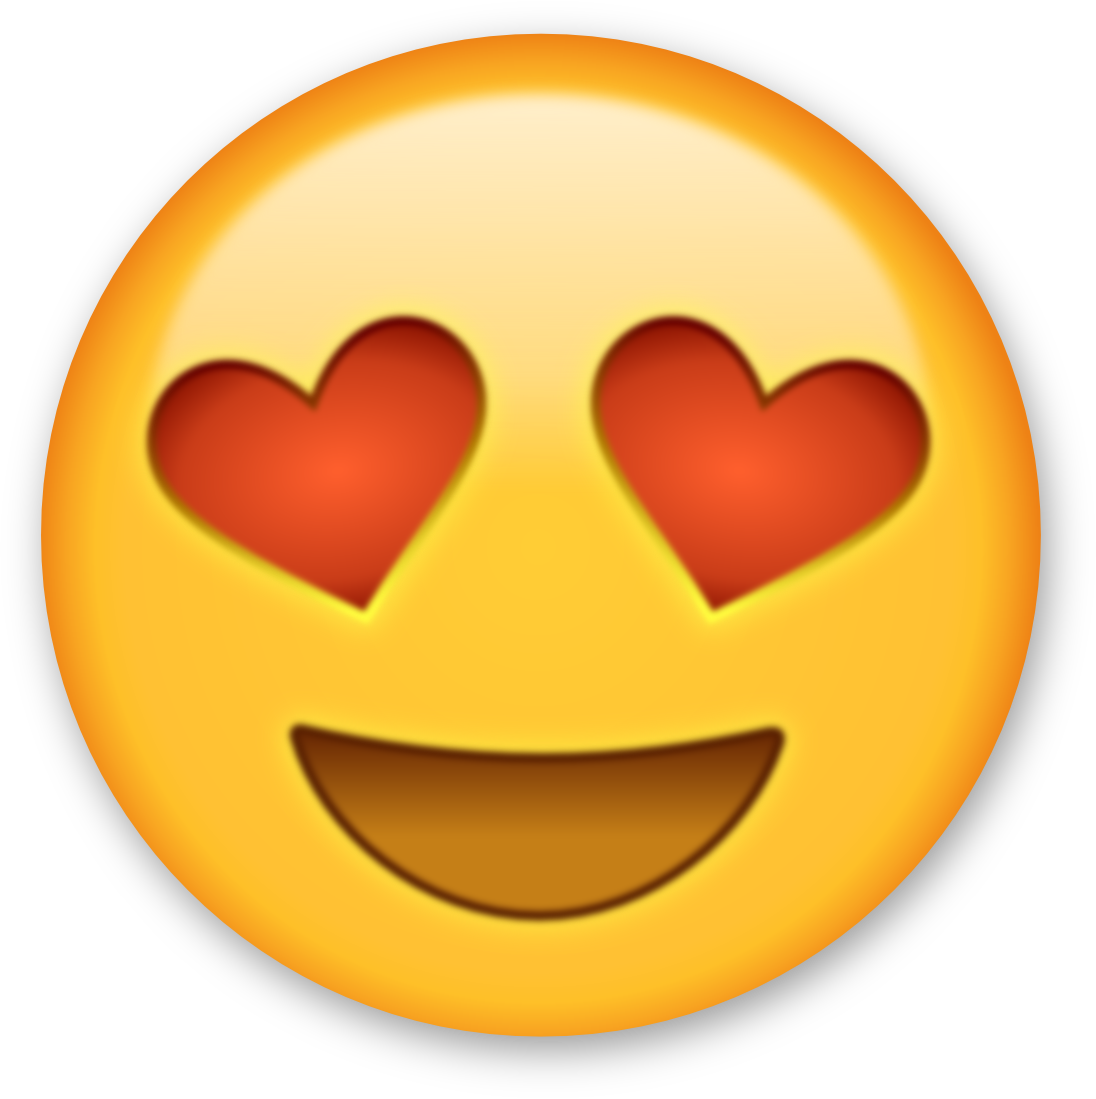 Telephone clipart emoji.  collection of apple